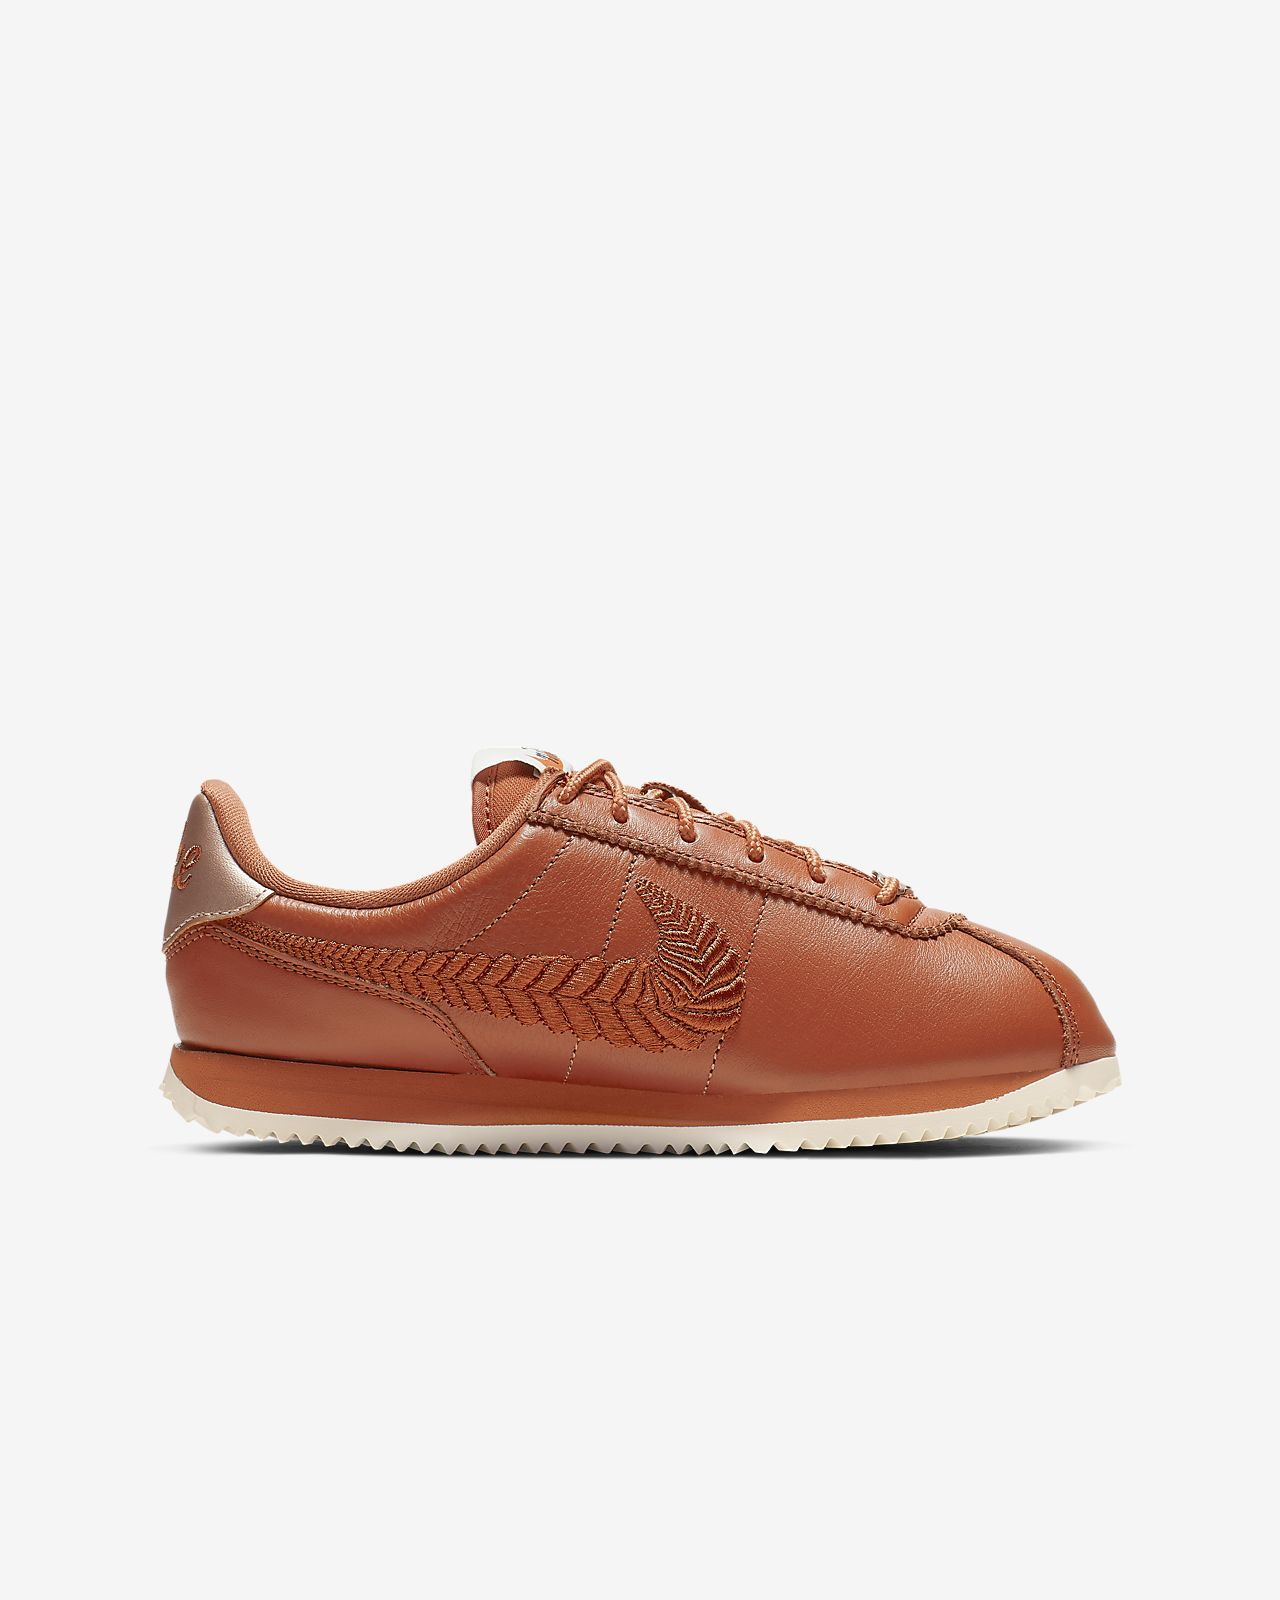 outlet store 5e43a 61fbd ... Nike Cortez Basic Premium Embroidered Older Kids Shoe